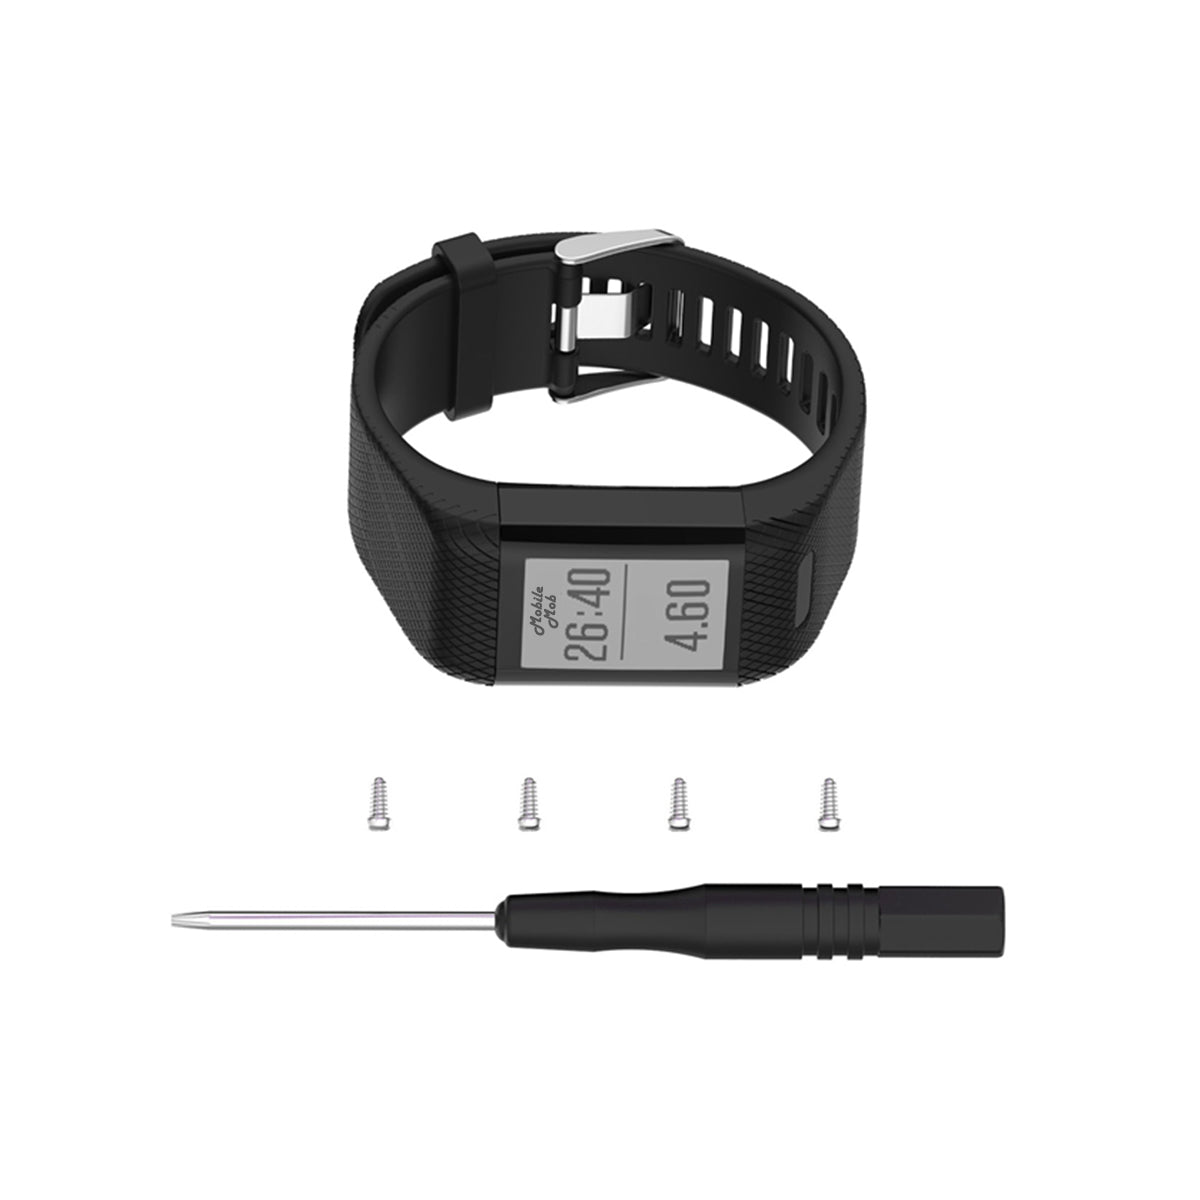 Garmin Vivosmart HR+ Plus Replacement Bands Strap with Stainless Buckle